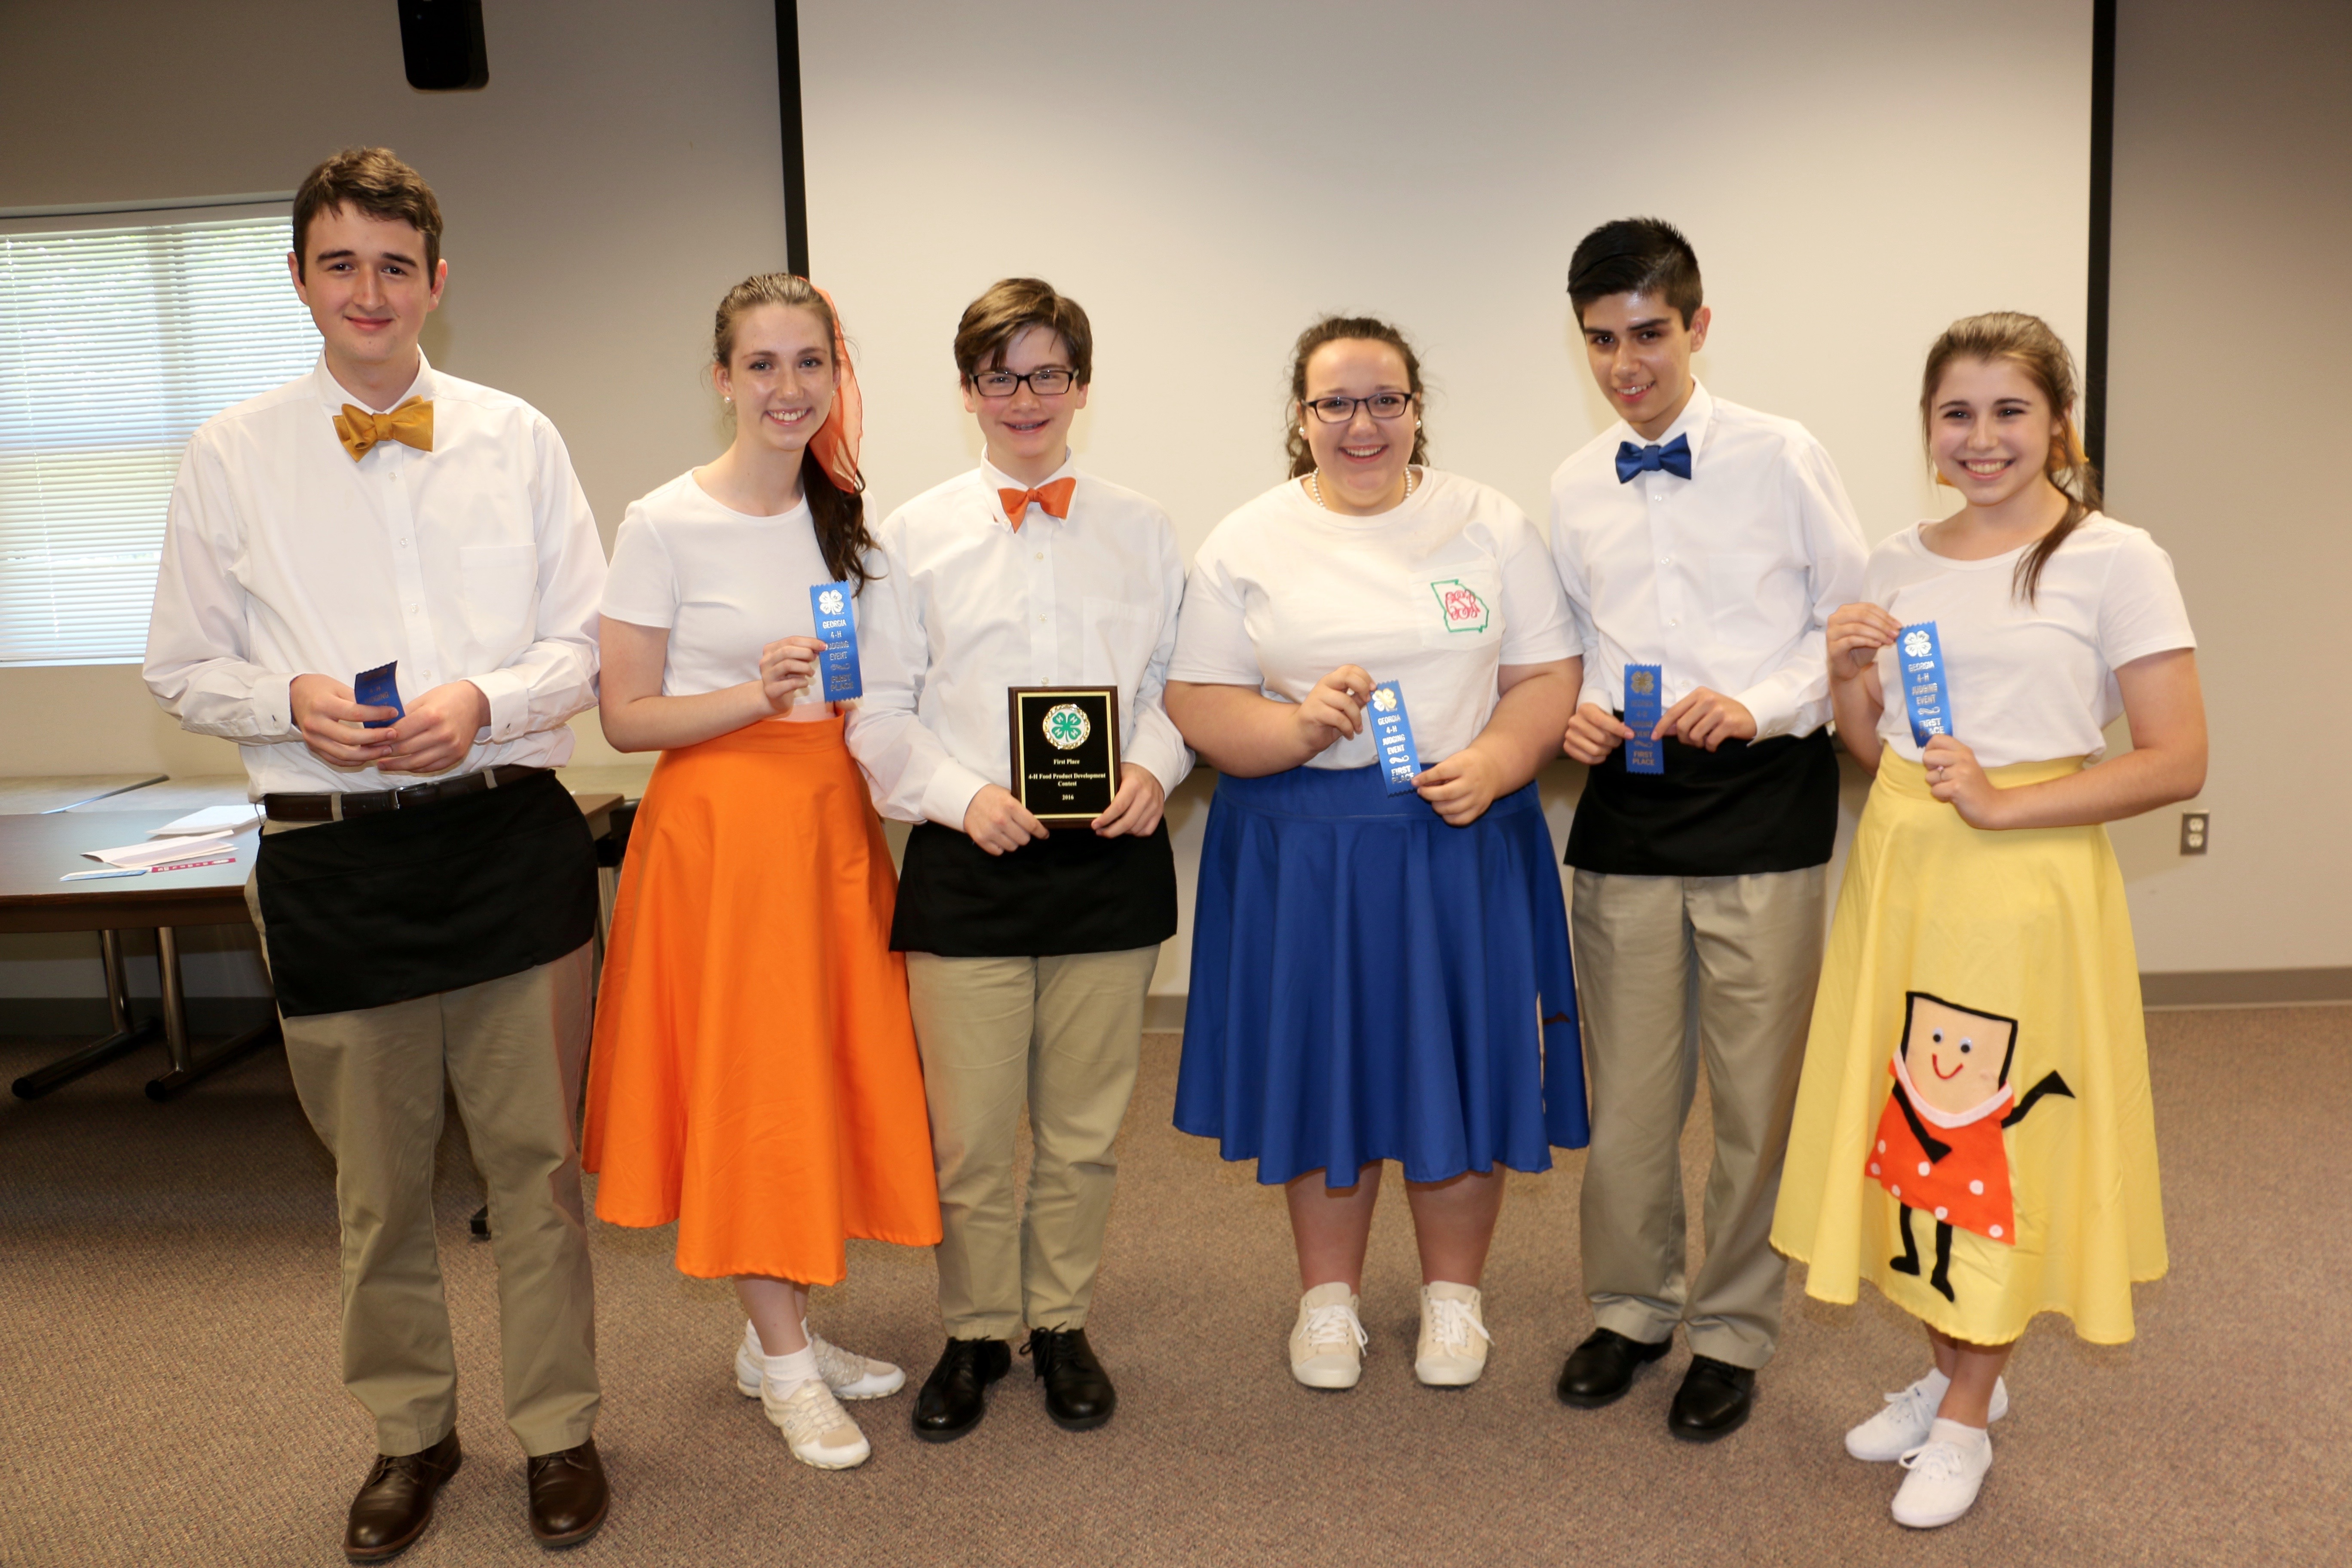 Members of the first place Spalding County 4-H Food Product Development Team include Hannah Rutledge, Isabel Rutledge, Carrianna Simmons, Nathaniel Haulk, Jordan Turner, Francisco Javier Zepeda and their coach, 4-H Program Assistant Lisa Kelley.